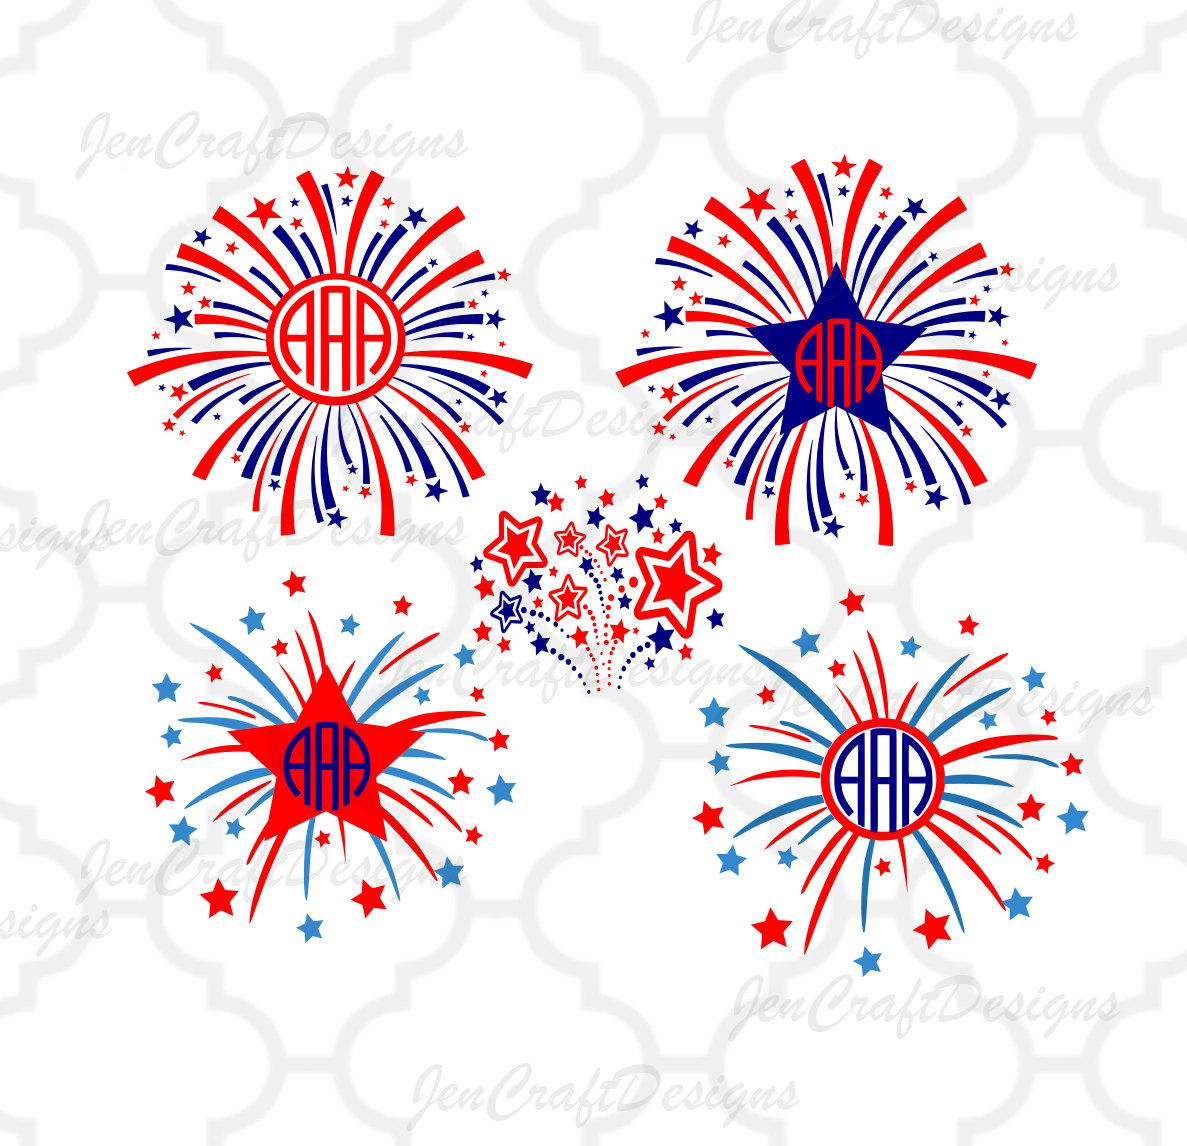 Fireworks clipart memorial day Independence day of Fireworks Fireworks